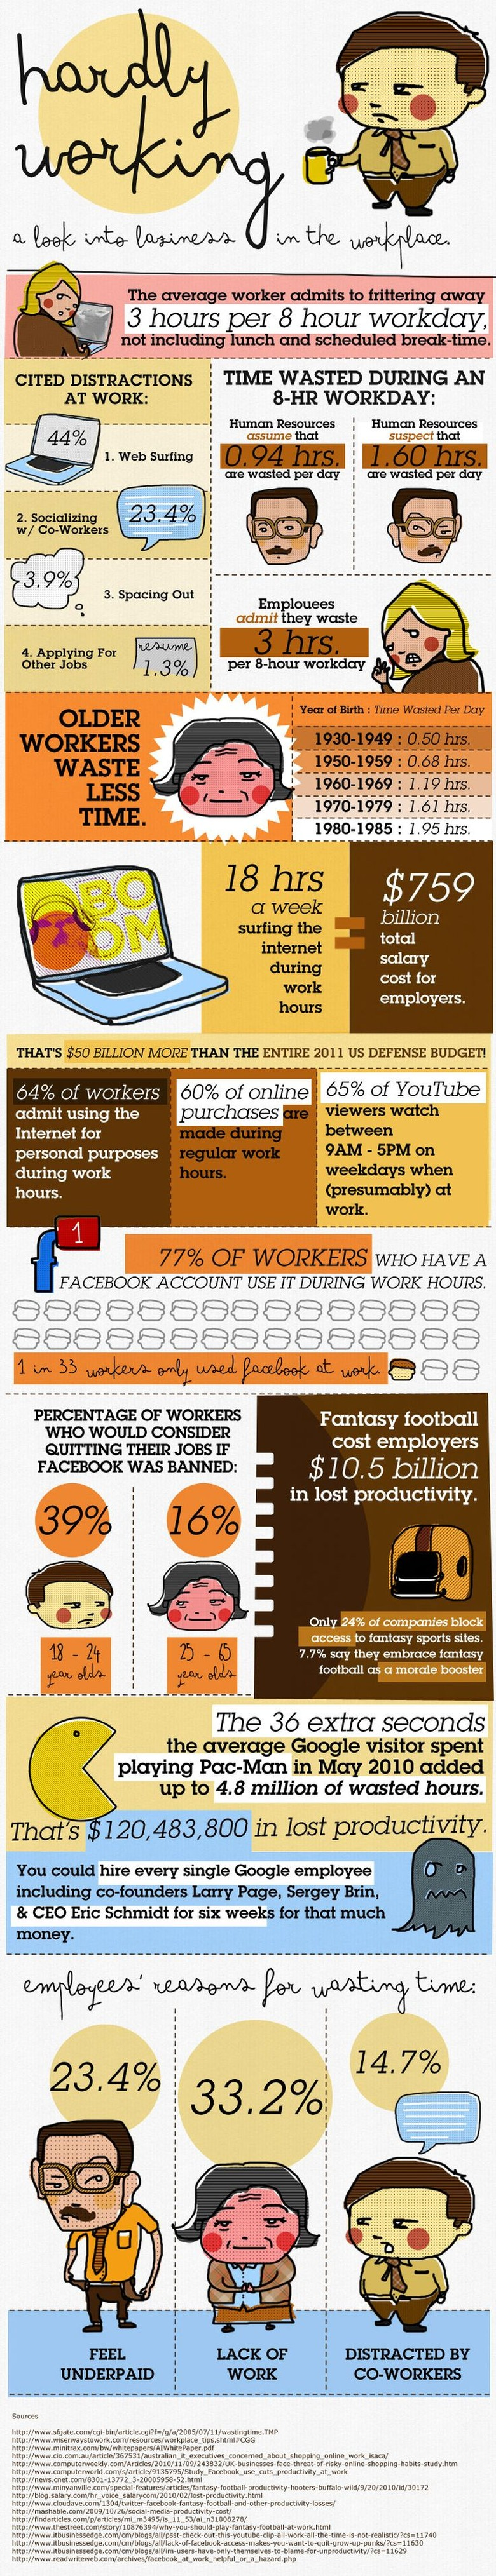 small business working hours